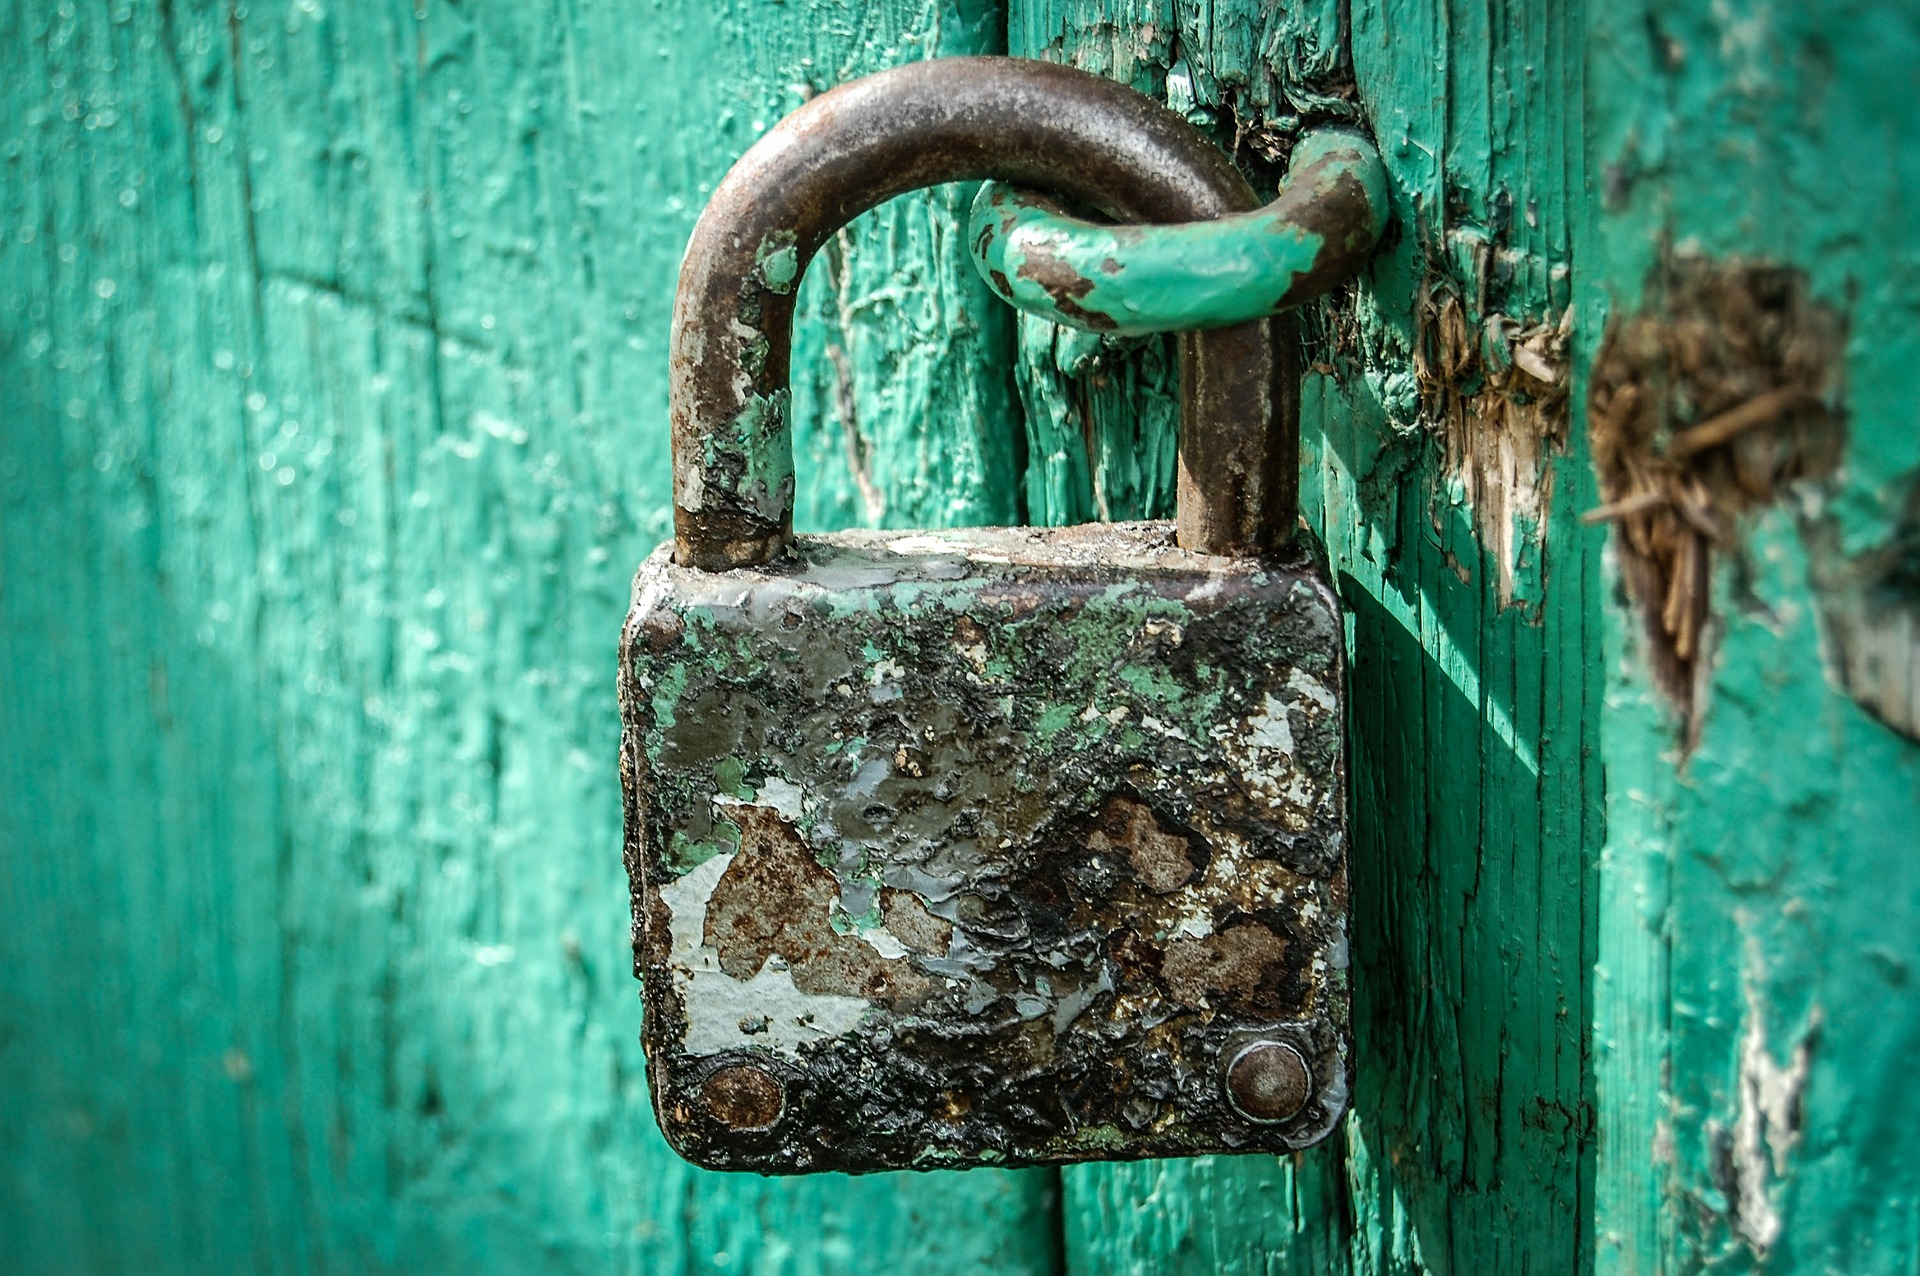 5 things to examine in your cybersecurity review